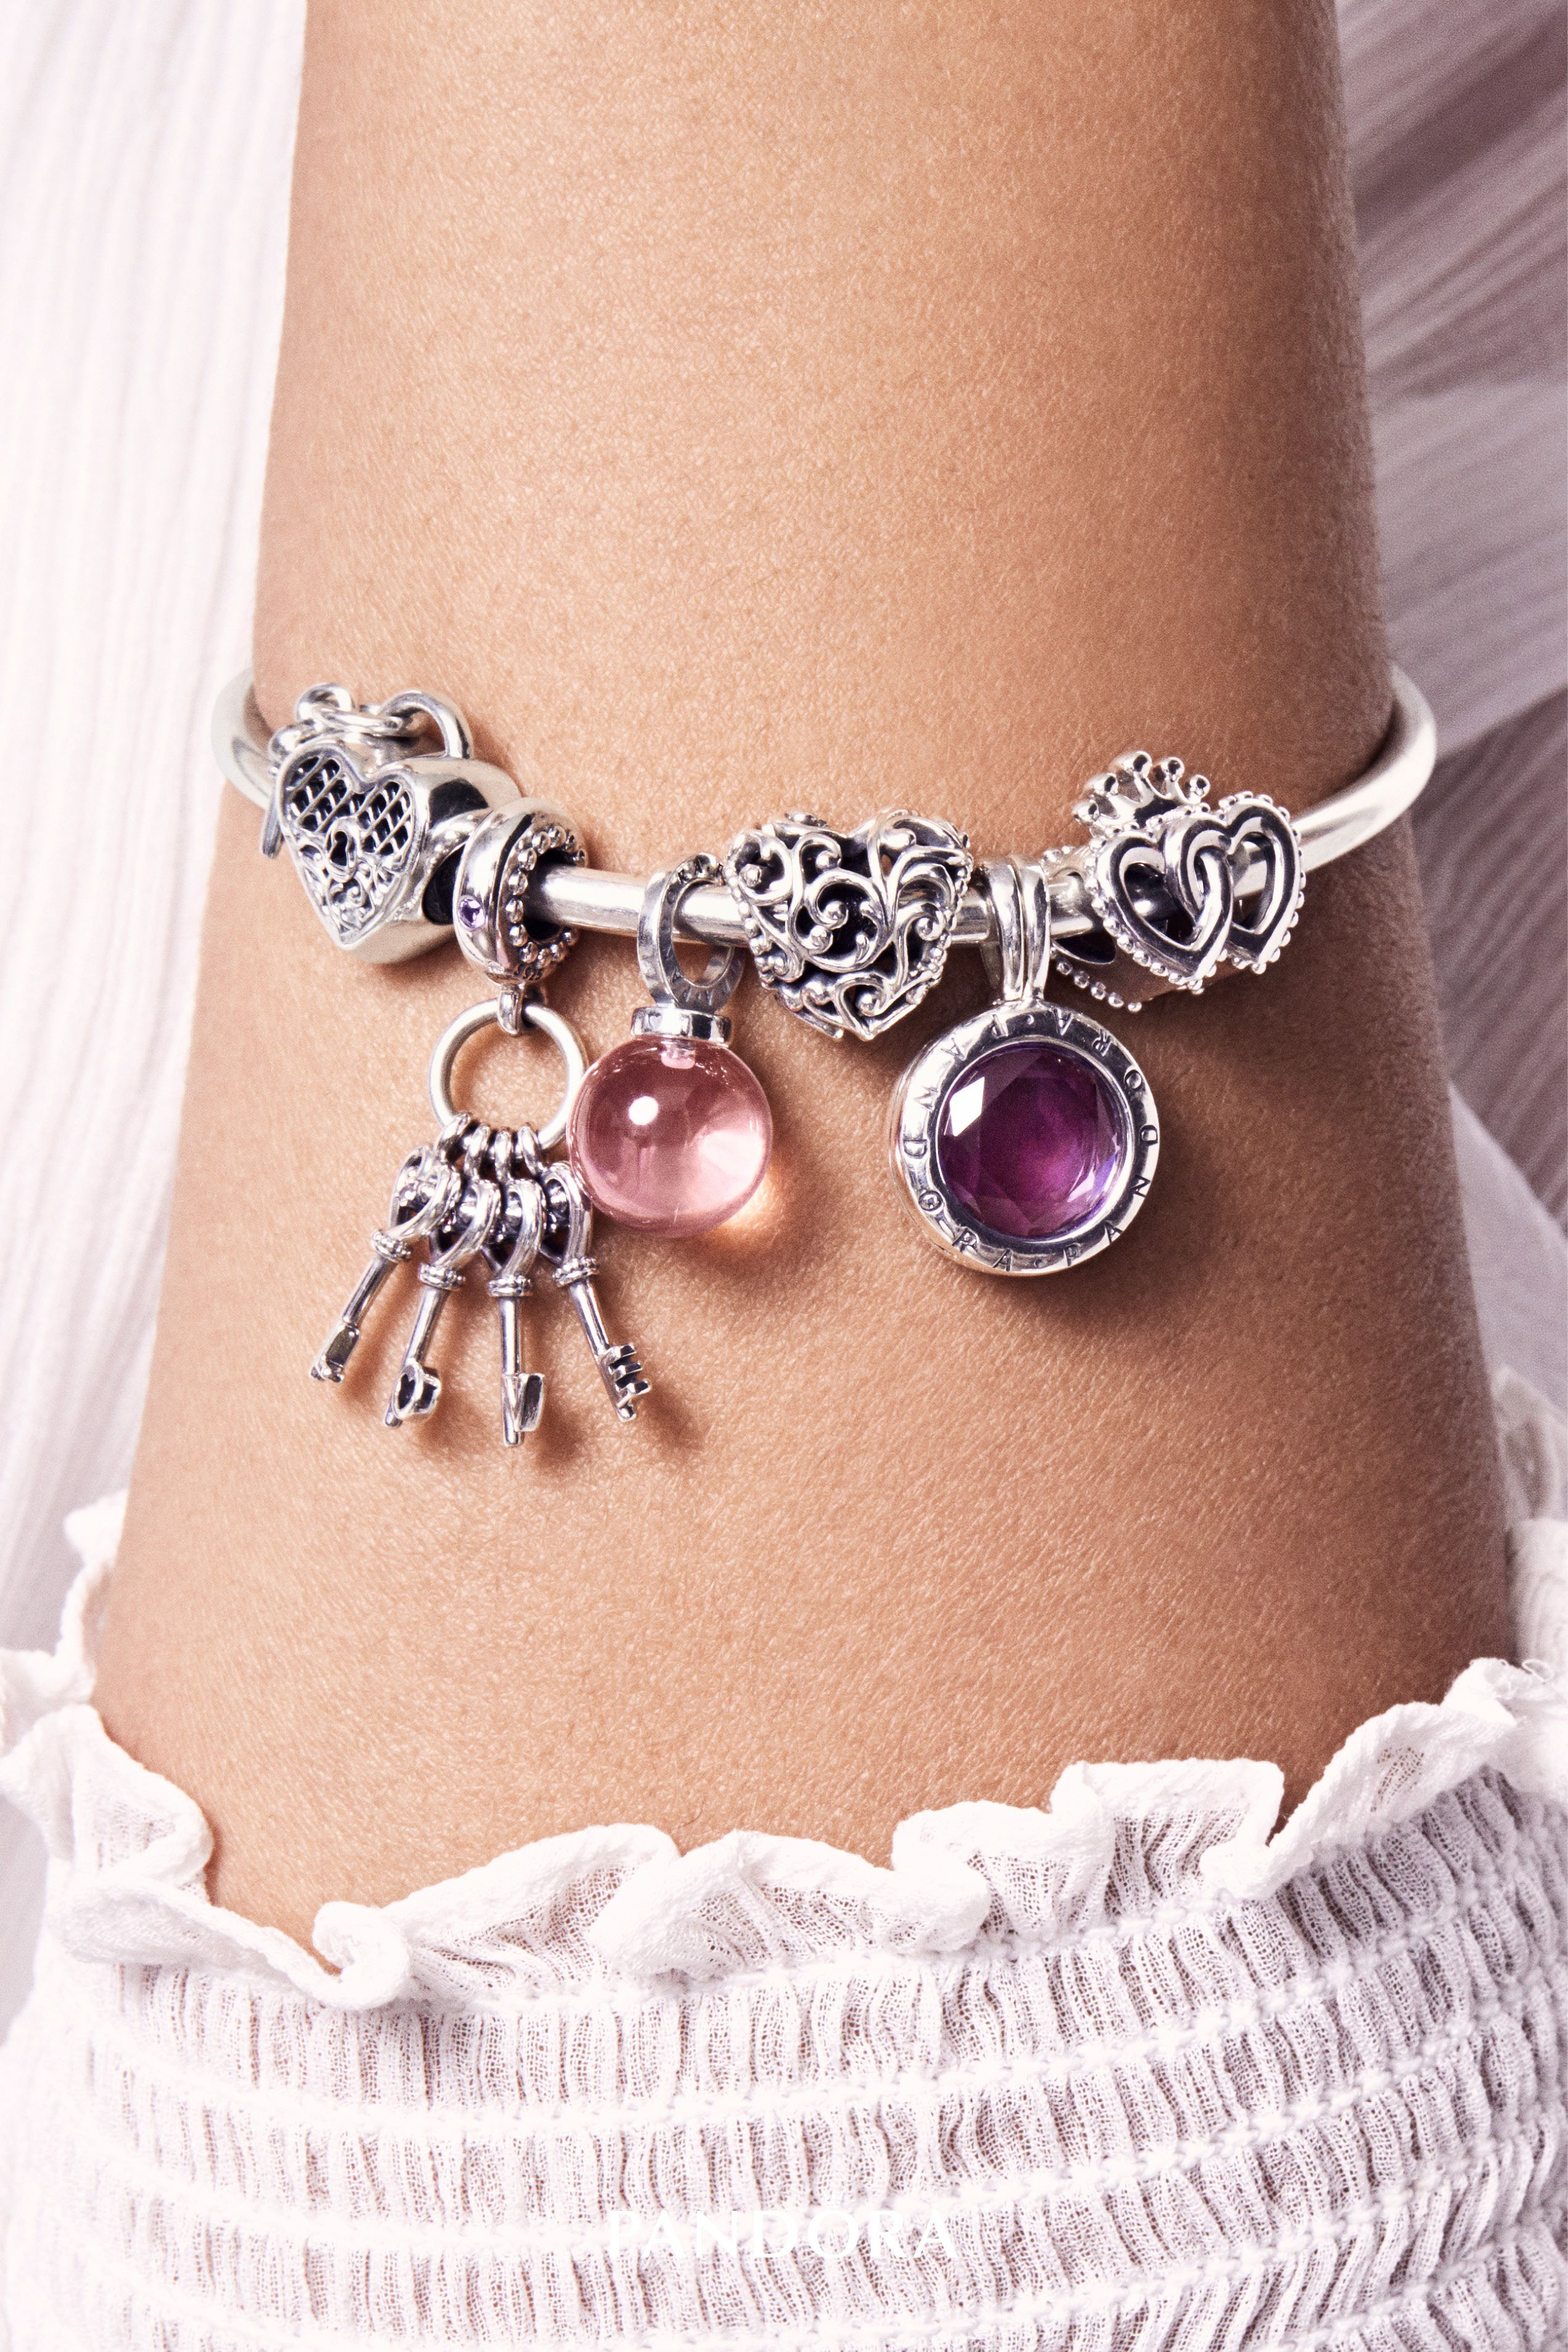 29b8cbc9f Let your style reign supreme with new and beautifully crafted charms and  bracelets. Tonal pink and purple stones radiate regal elegance on the new  ...